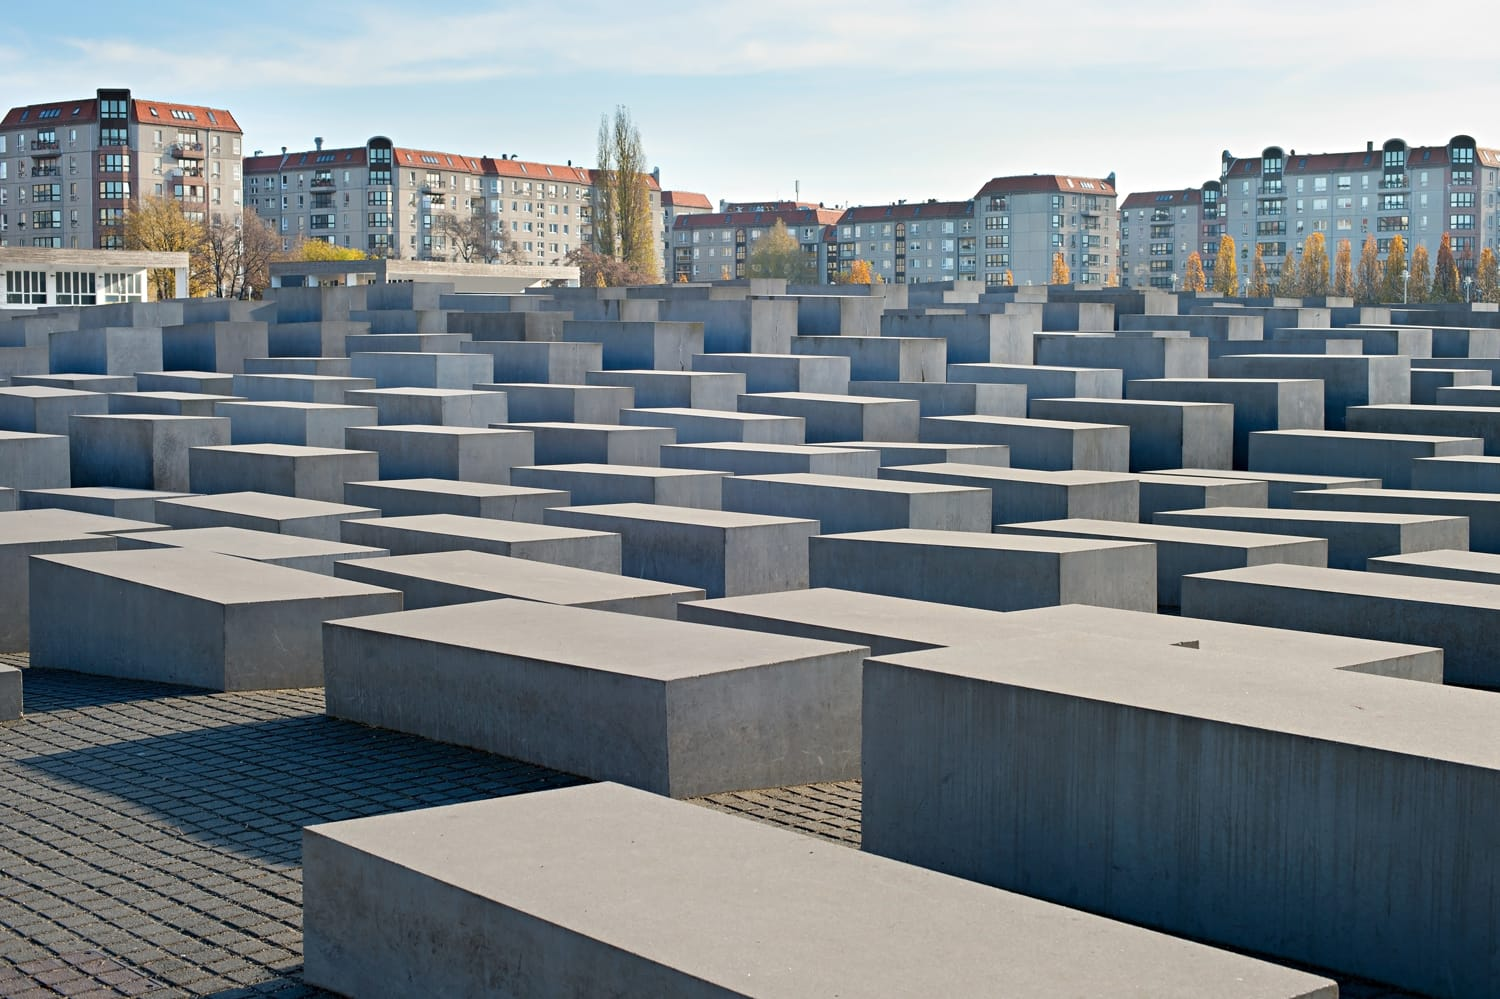 View of Jewish Holocaust Memorial, Berlin, Germany